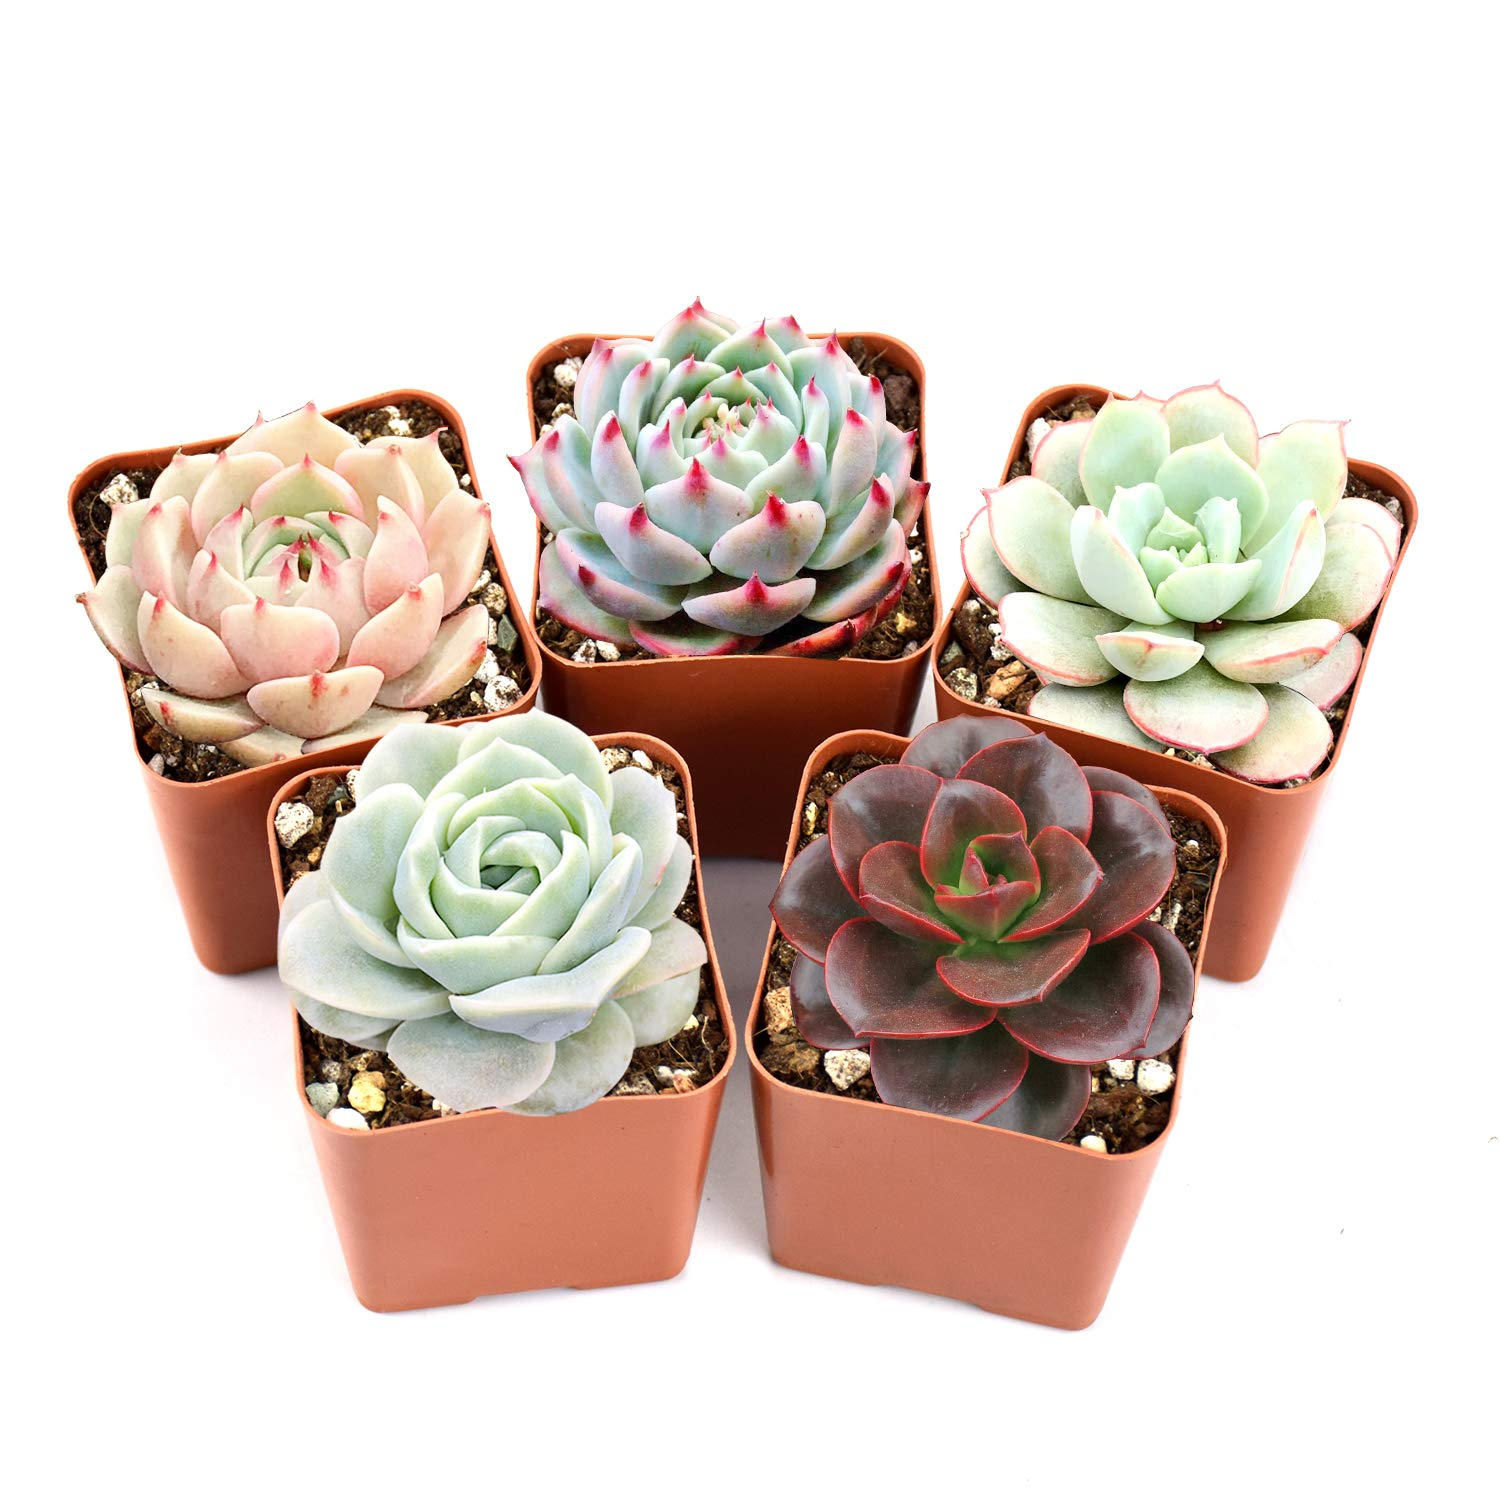 The Next Gardener Succulent Plants, 5 Pack of Assorted Rosettes, Fully Rooted in 2'' Planter Pots with Soil, Rare Varieties, Unique Real Live Indoor Succulents/Cactus Décor ONLY by The Next Gardener by The Next Gardener